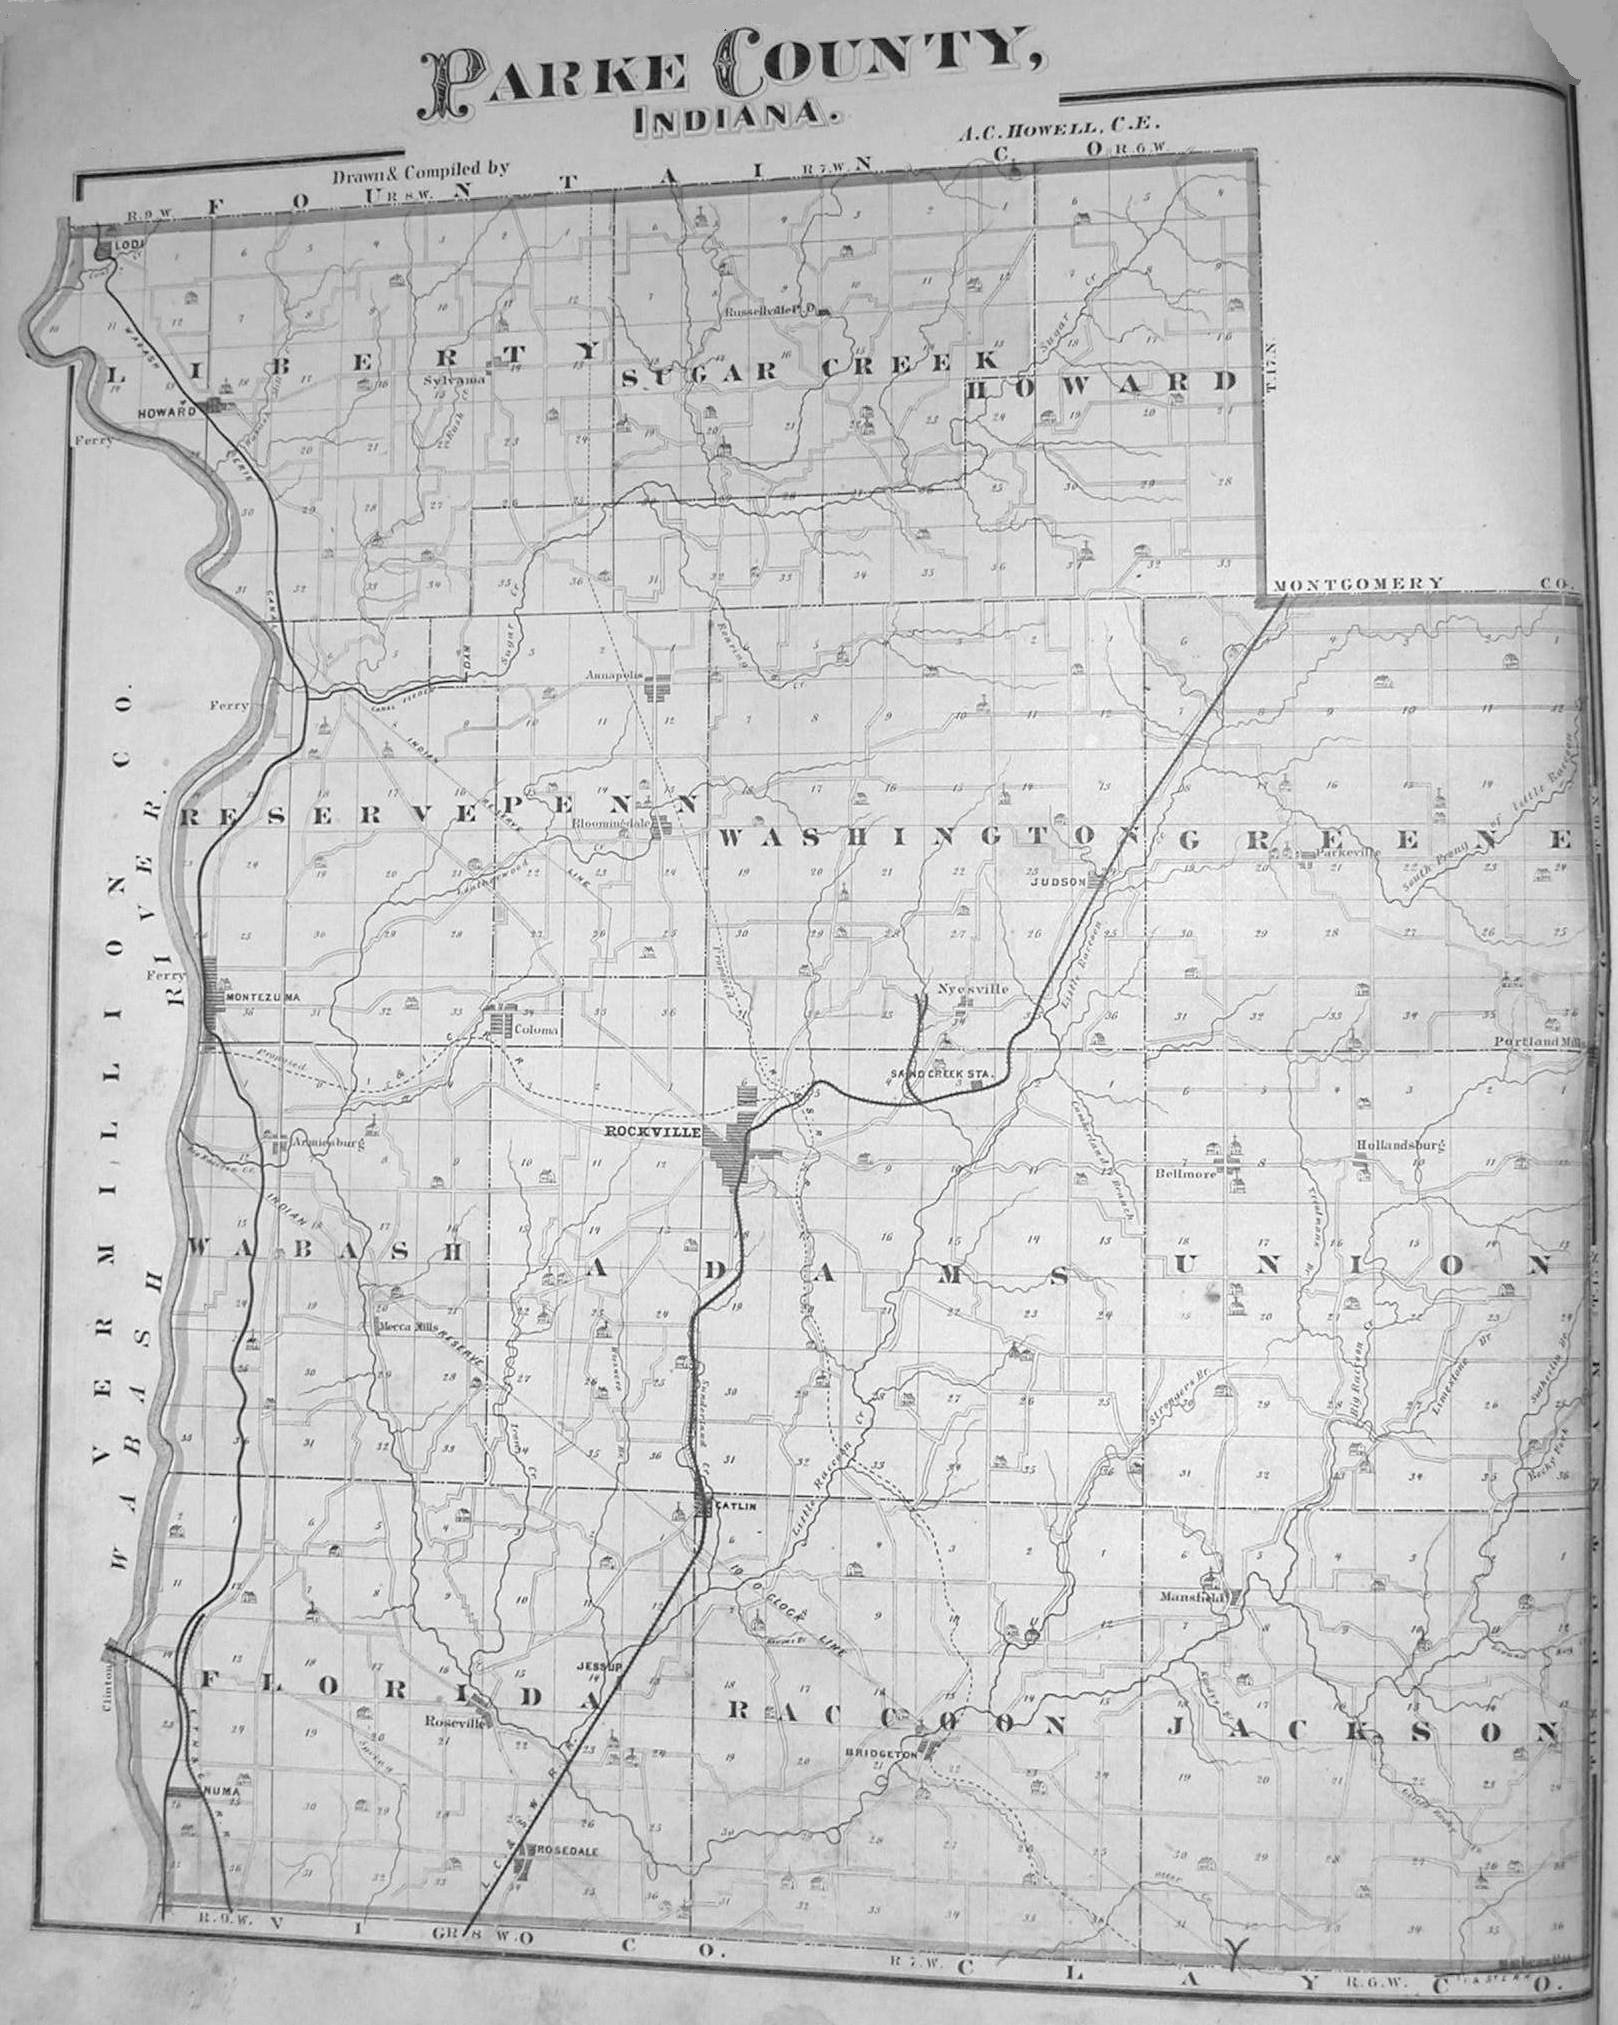 1874 Atlas Parke County Indiana